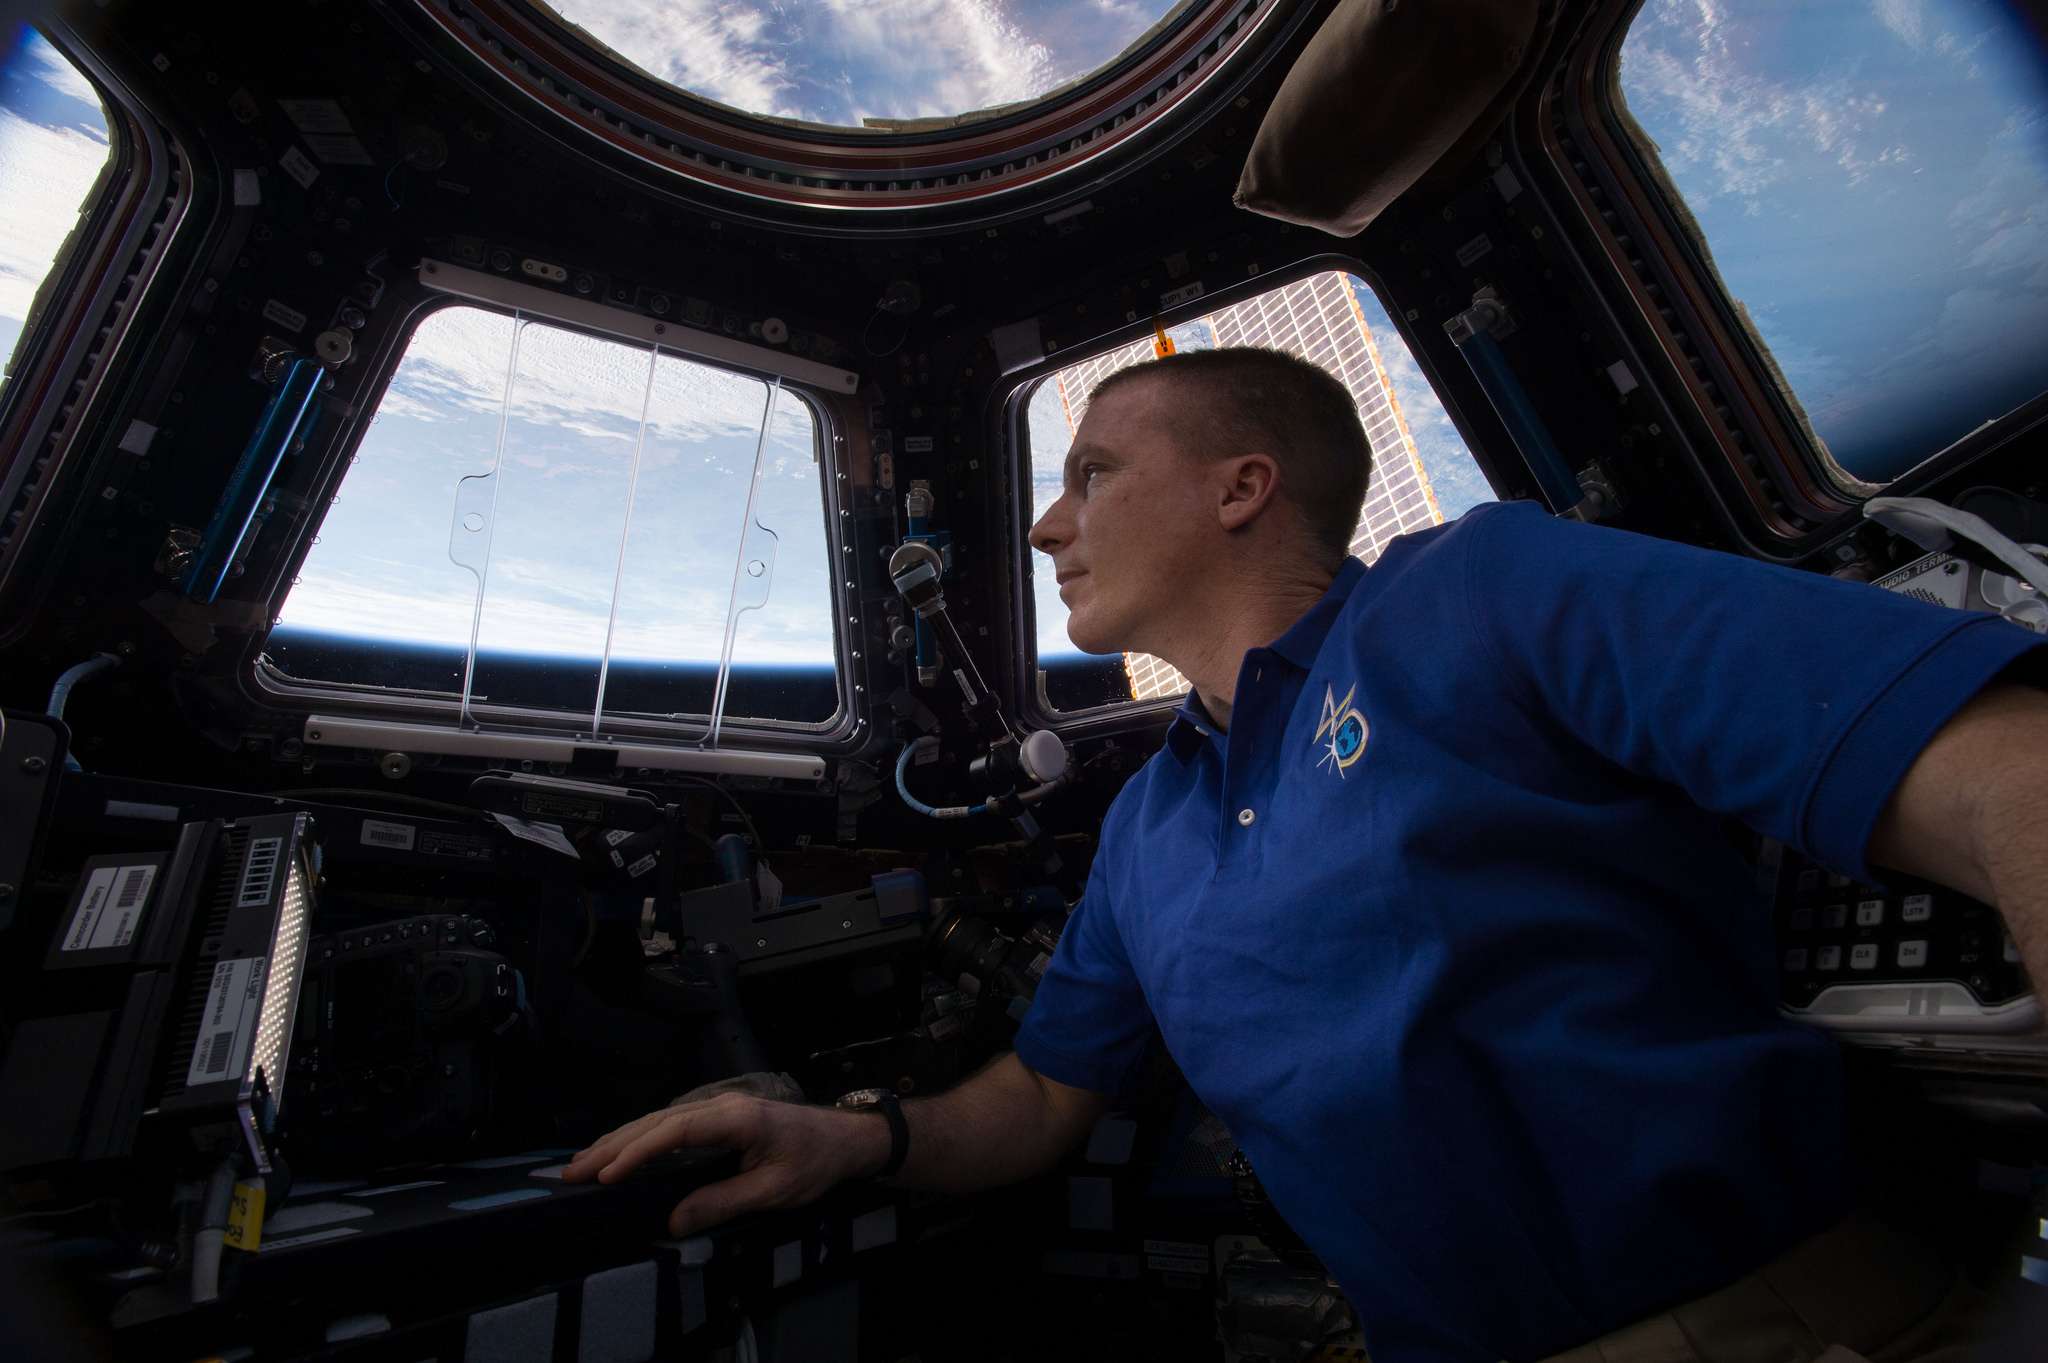 A Day on the International Space Station